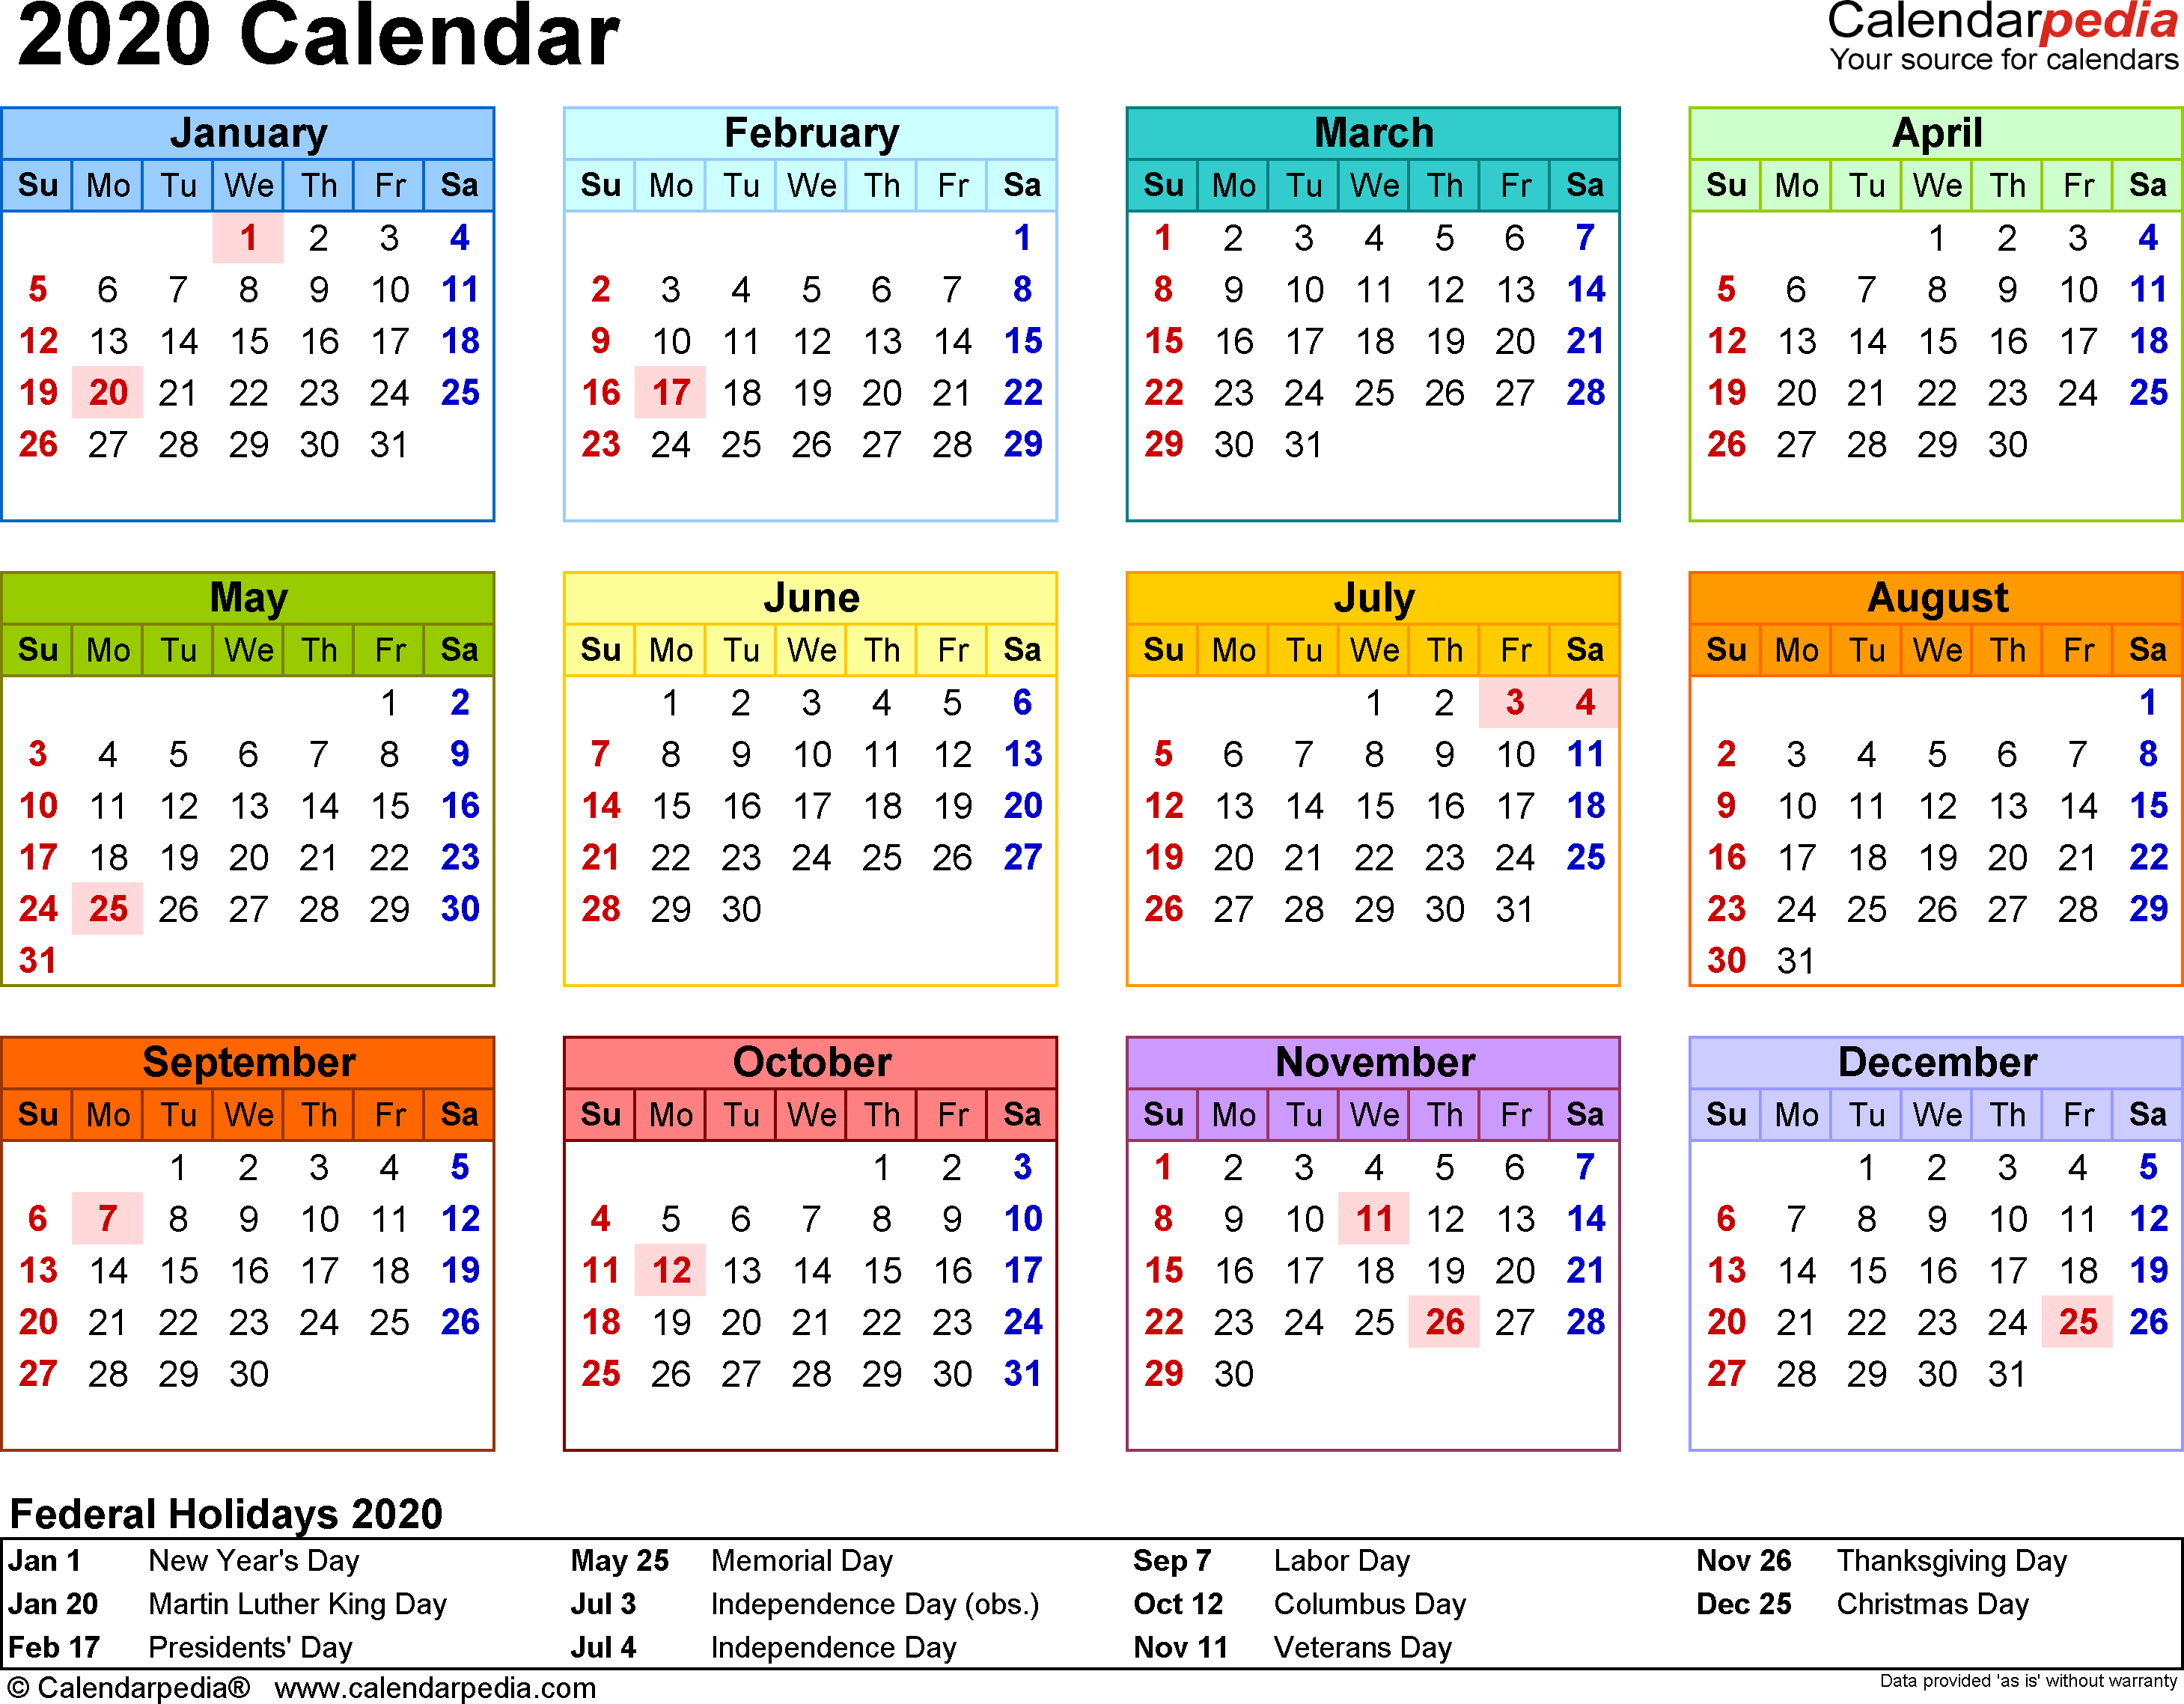 2020 Calendar - Download 17 Free Printable Excel Templates (.xlsx) regarding 2029 2020 Year At A Gllance Calendar